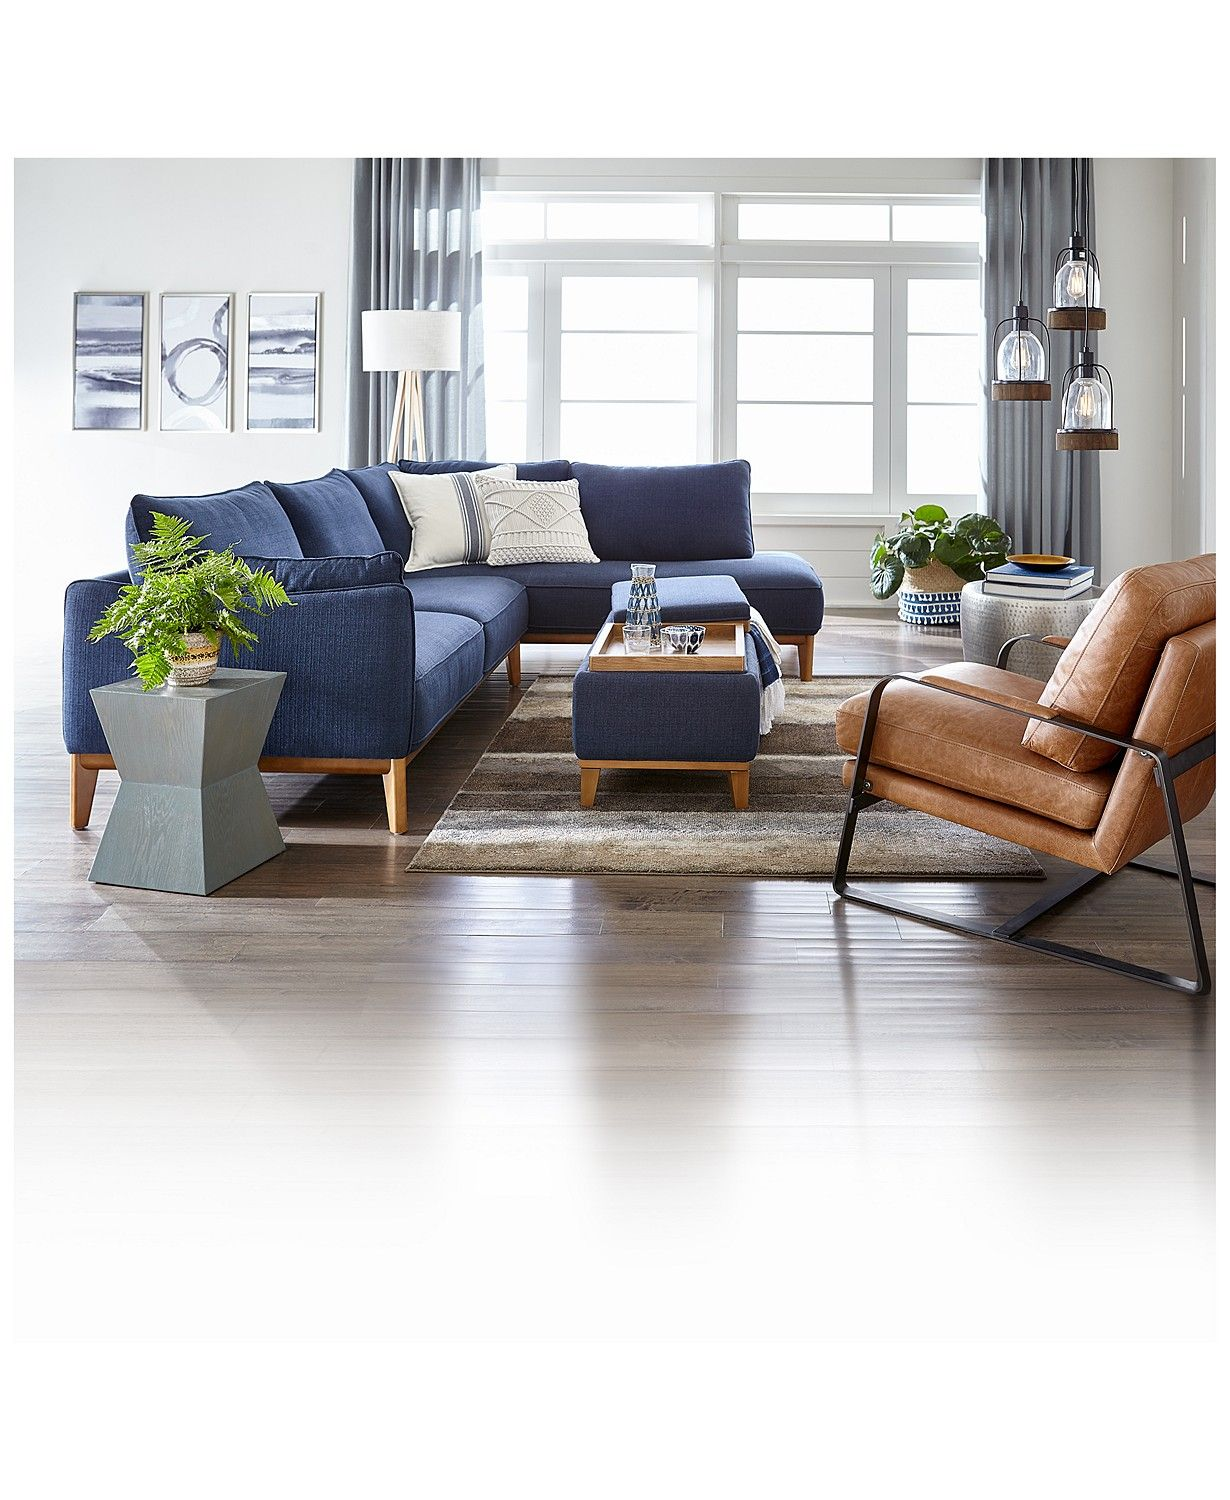 Furniture Jollene Fabric Sectional and Sofa Collection, Created for Macy's & Reviews - Furniture - Macy's